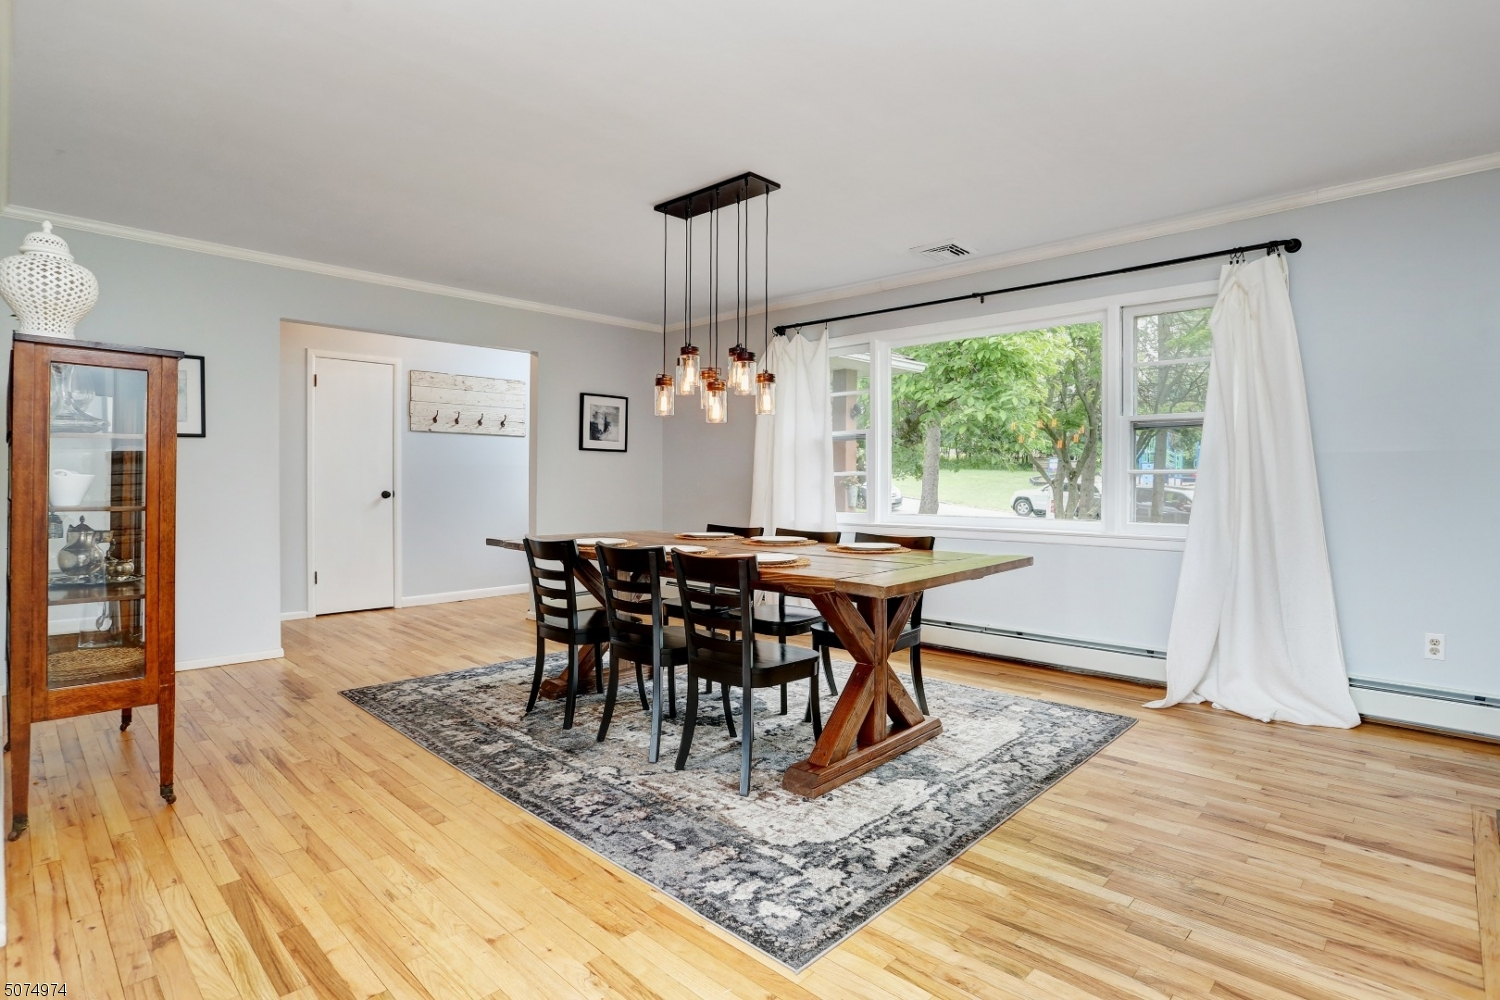 Brilliant, updated, open concept floor plan with refinished hardwood floors.  A large picture window with two side double-hung windows allow for tons of natural sunlight into this already bright and airy room.